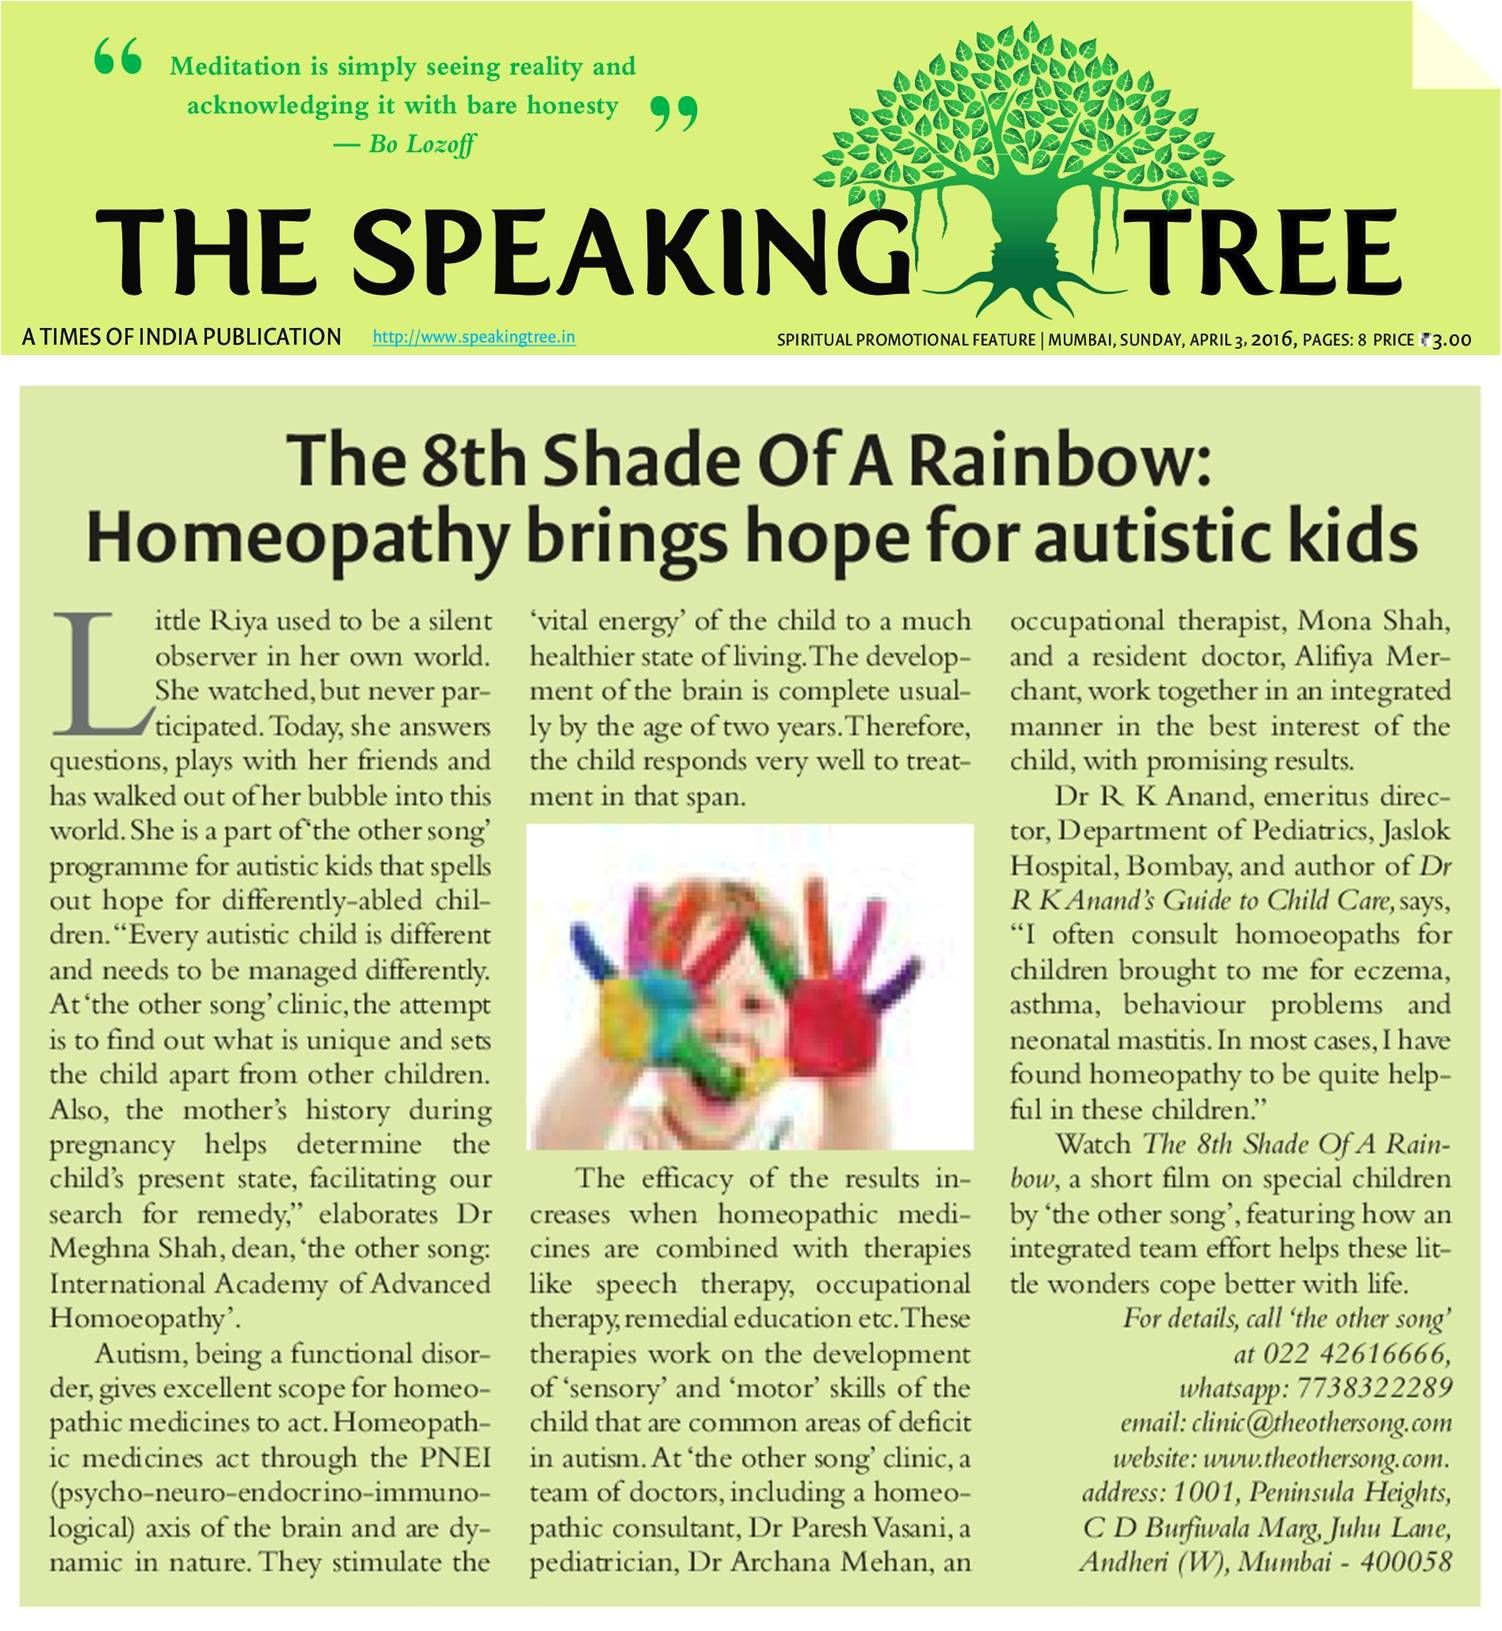 The 8th Shade of a Rainbow Homeopathy brings hope for